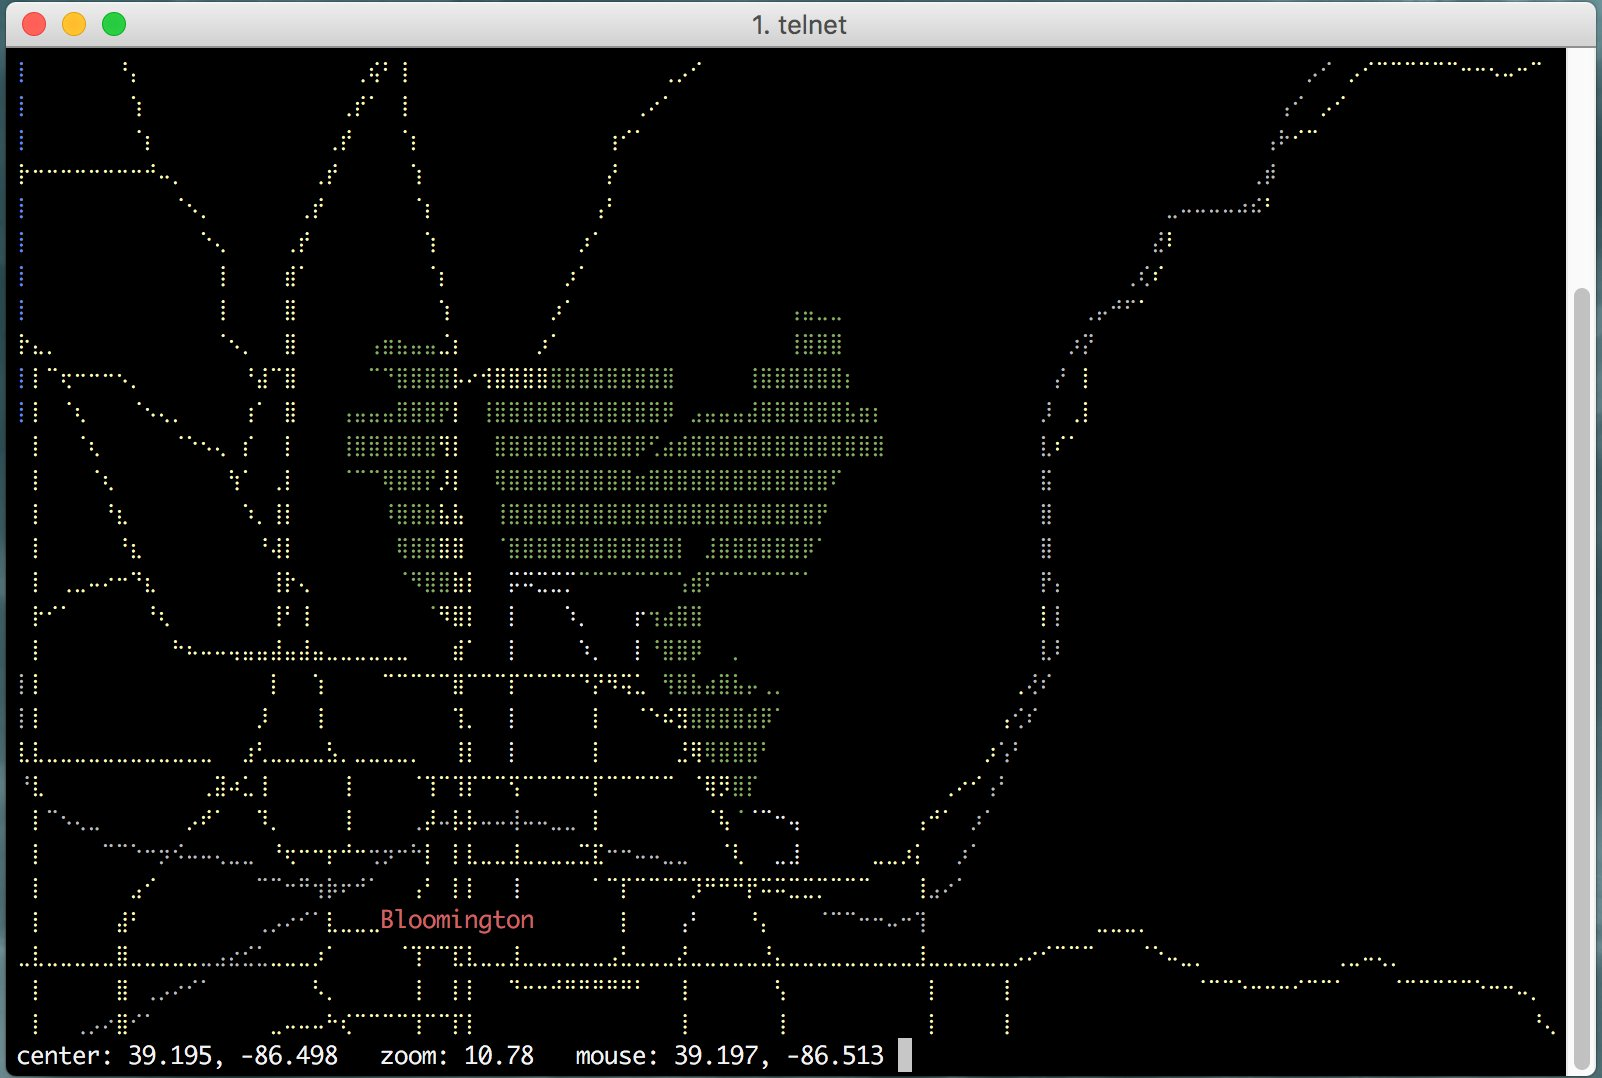 telnet mapscii.me # For maps in your terminal from OpenStreetMap. Yes really. https://t.co/FckeNVD5Nm